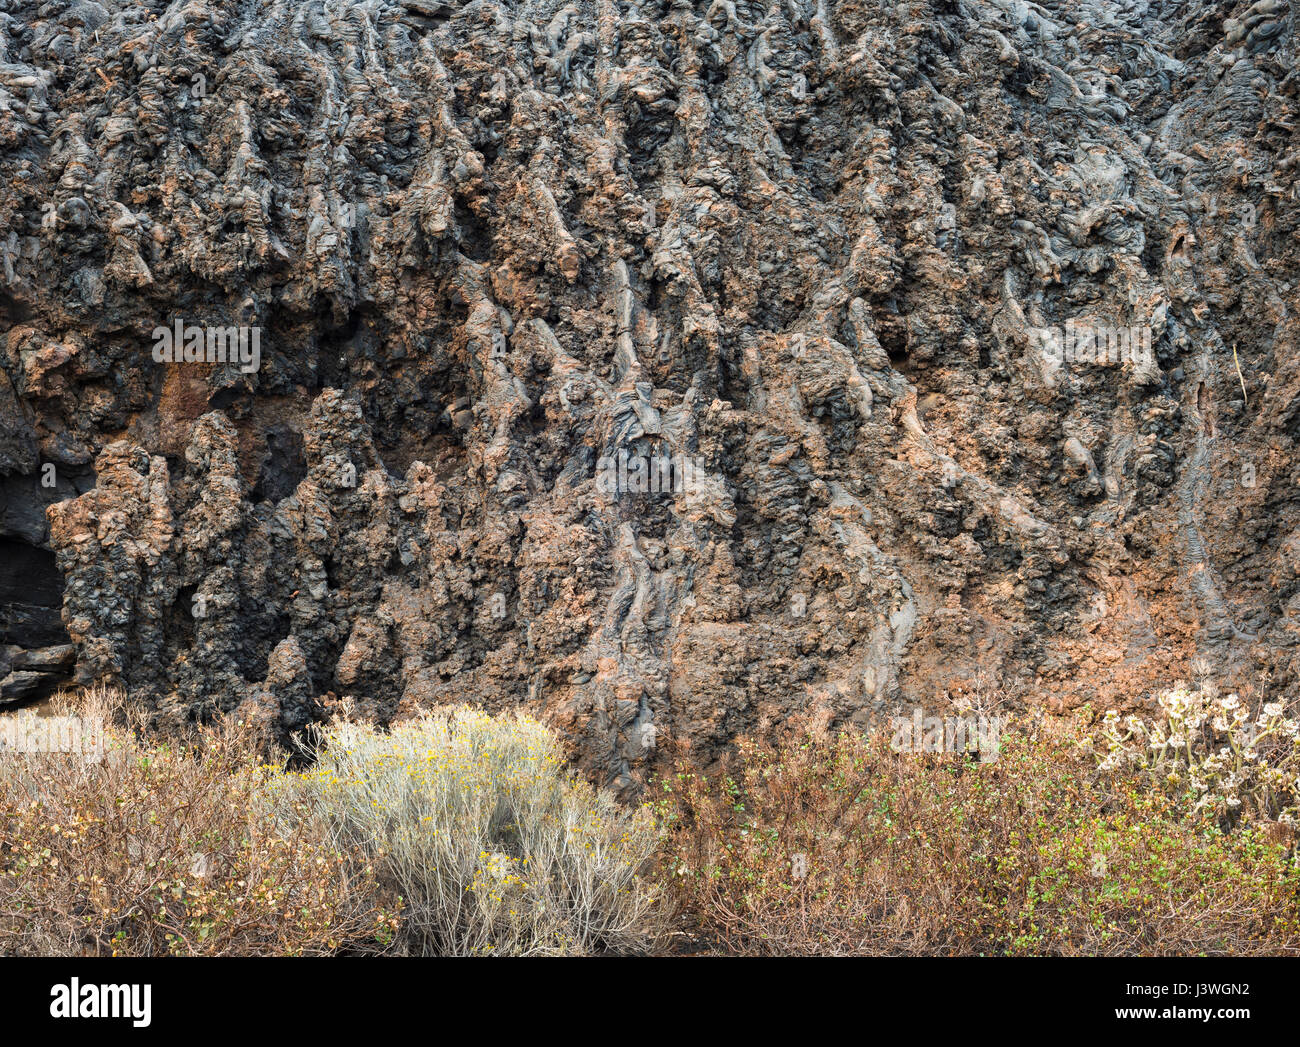 Detail of vertical section of pahoehoe or ropy lava on cliff face near La Restinga, El Hierro, Canary Islands, Spain - Stock Image